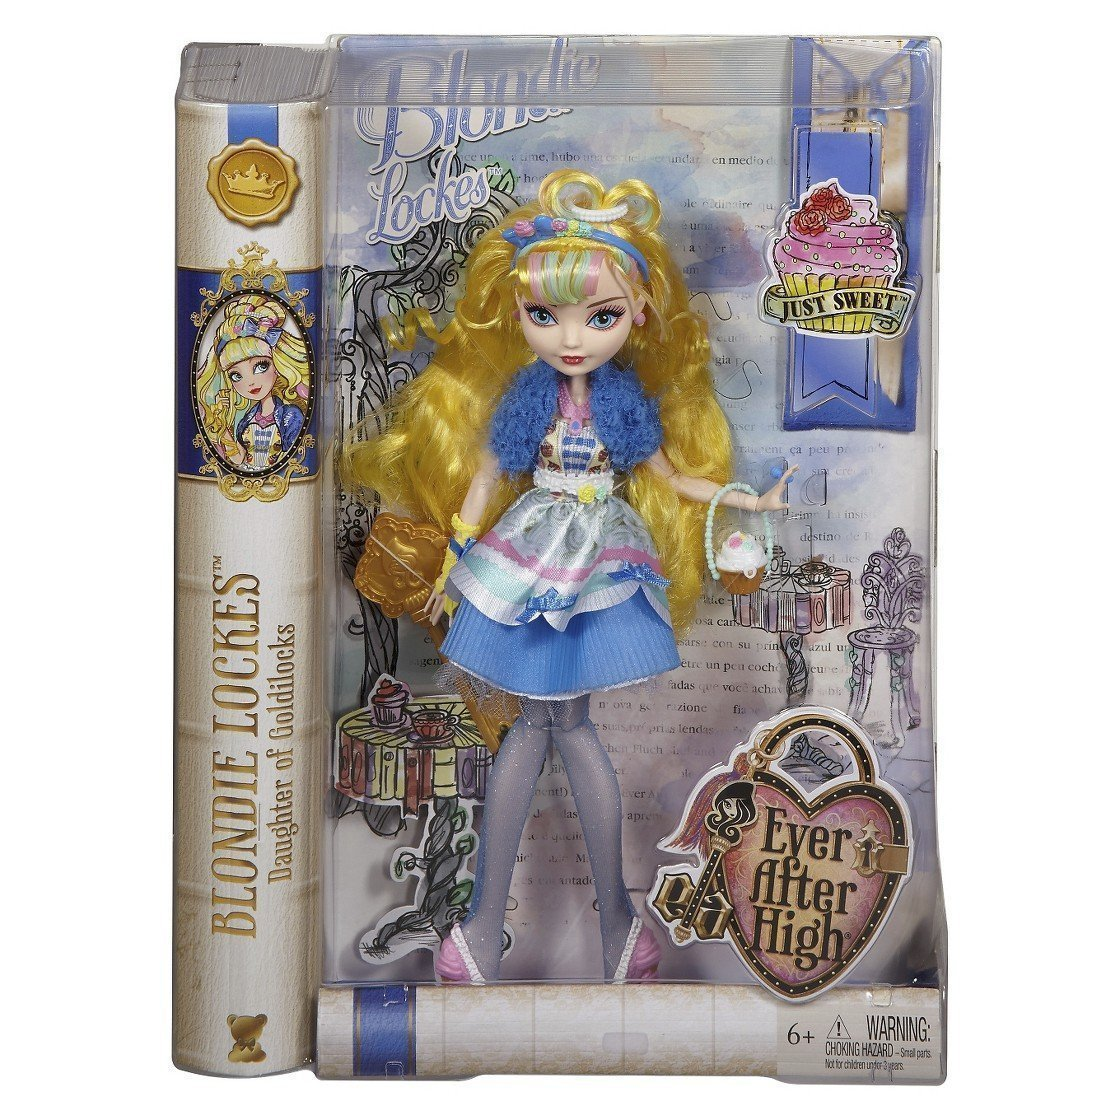 "Blondie Lockes Fashion Doll, 10.5""H, Ver After High Blondie Lockes Just Sweet Doll By Ever After High"